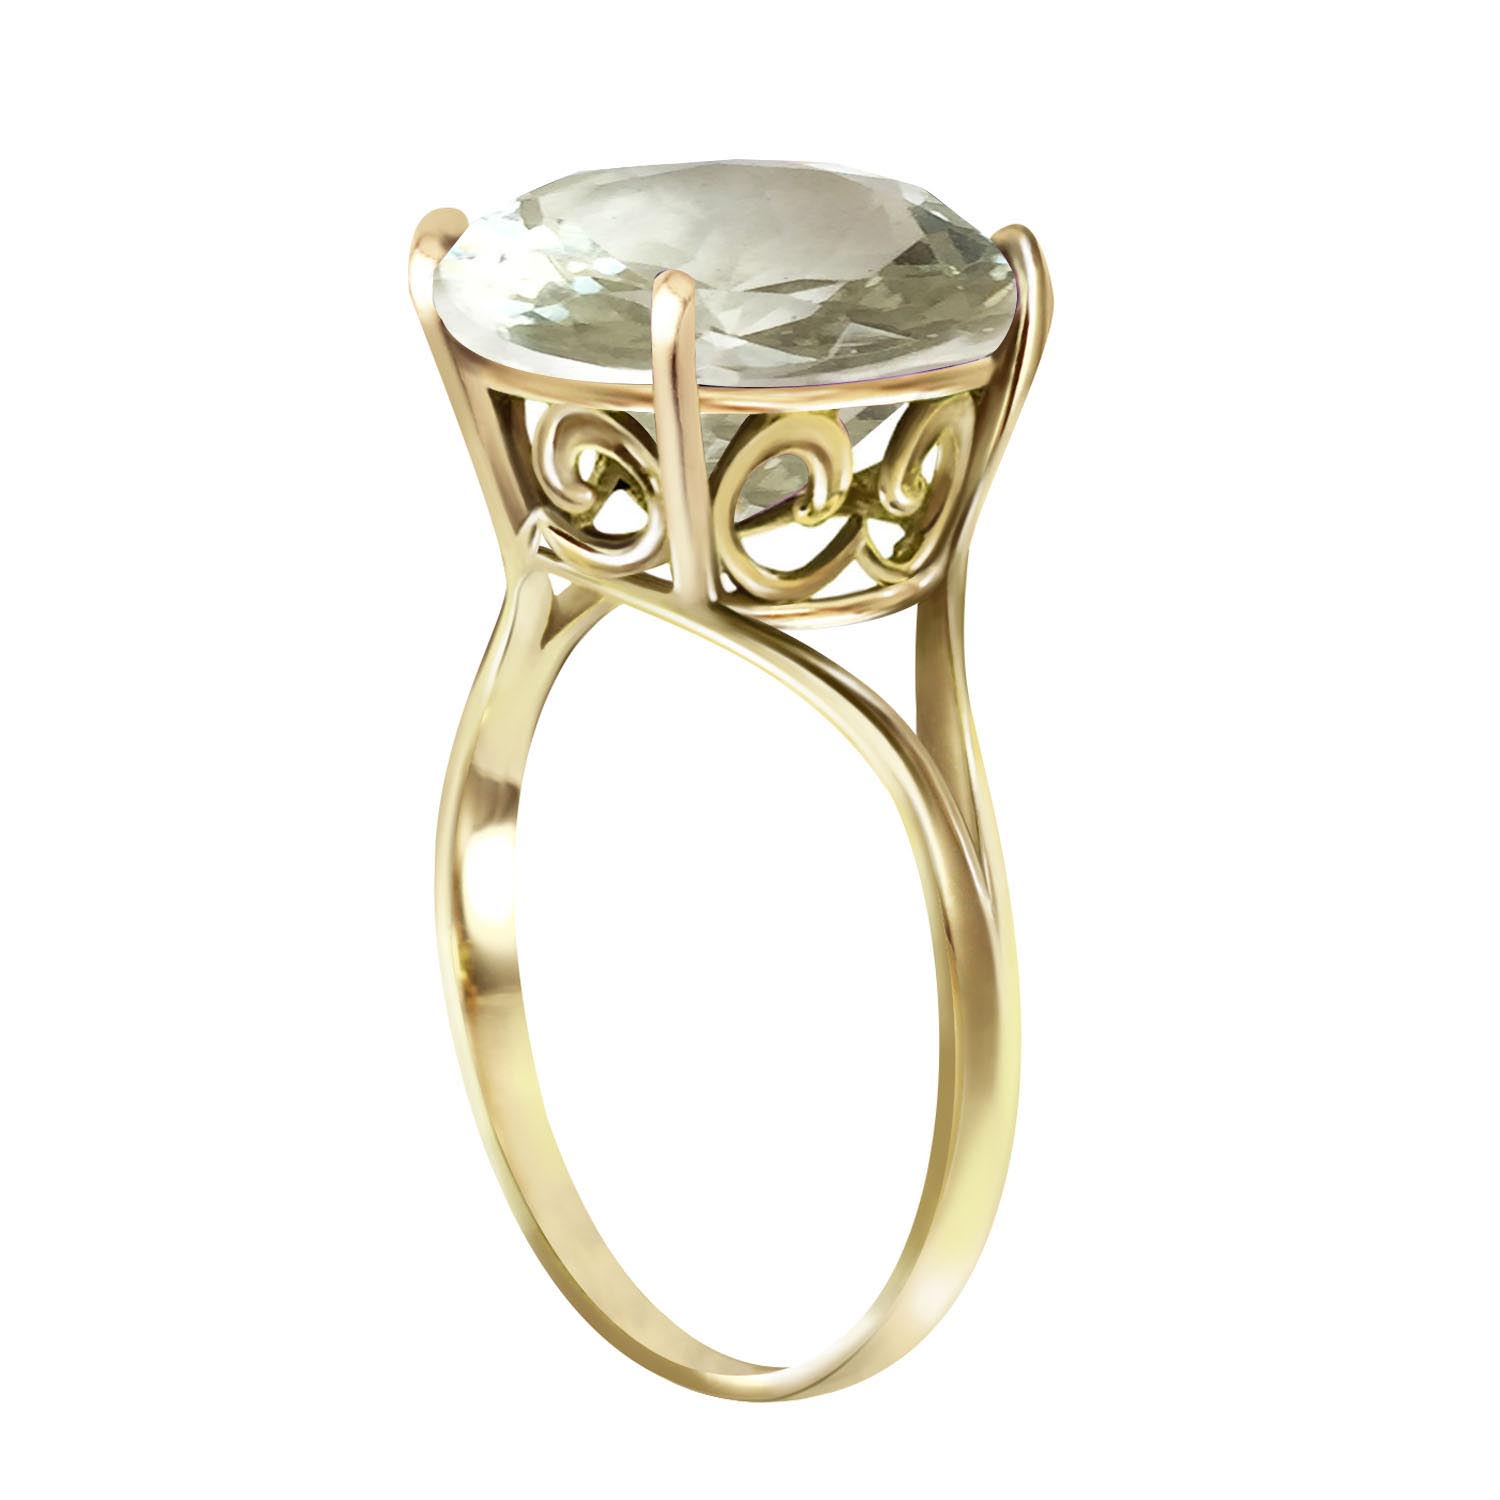 Round Cut Green Amethyst Ring 5.5 ct in 9ct Gold